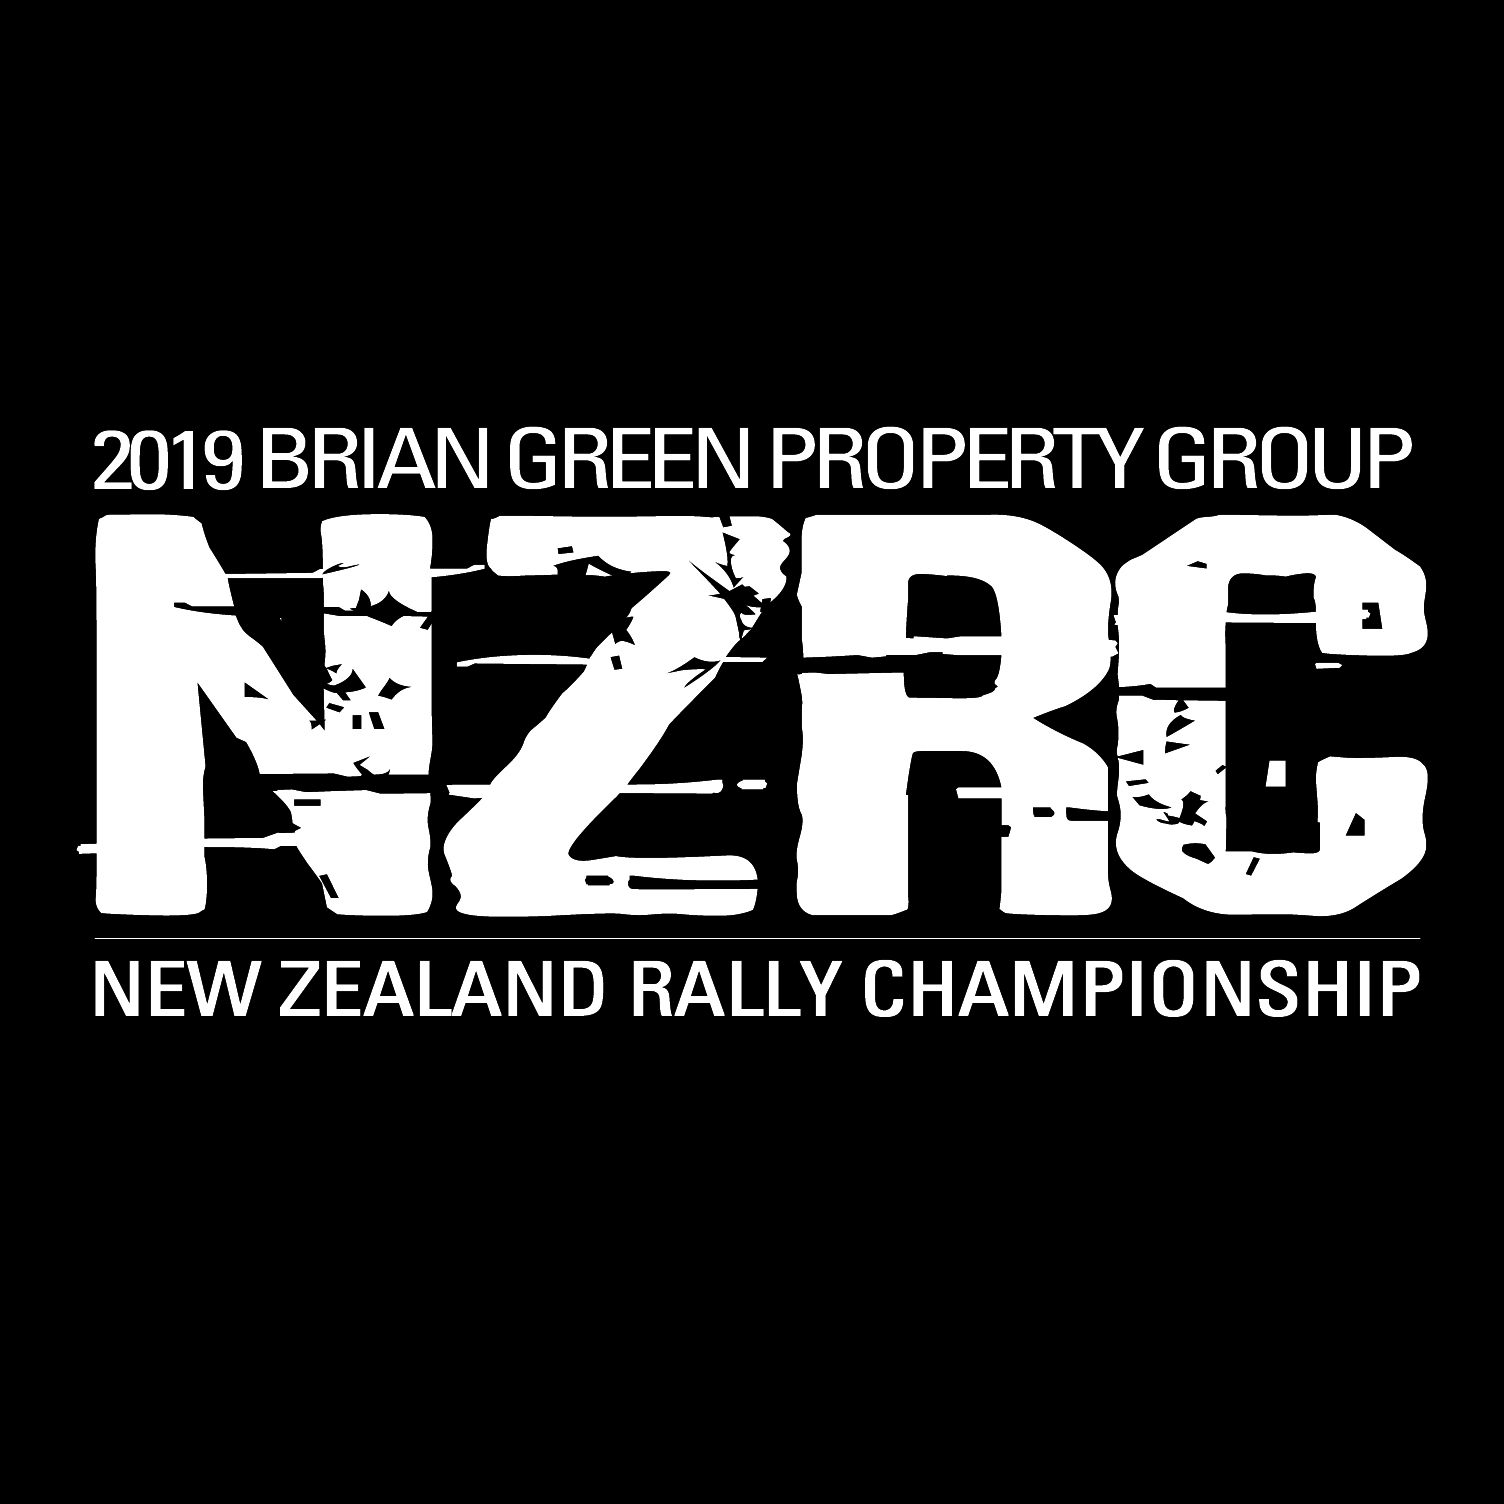 2015 Calendar: Rally Championship travels the nation | :: Brian Green Property Group New Zealand Rally Championship ::